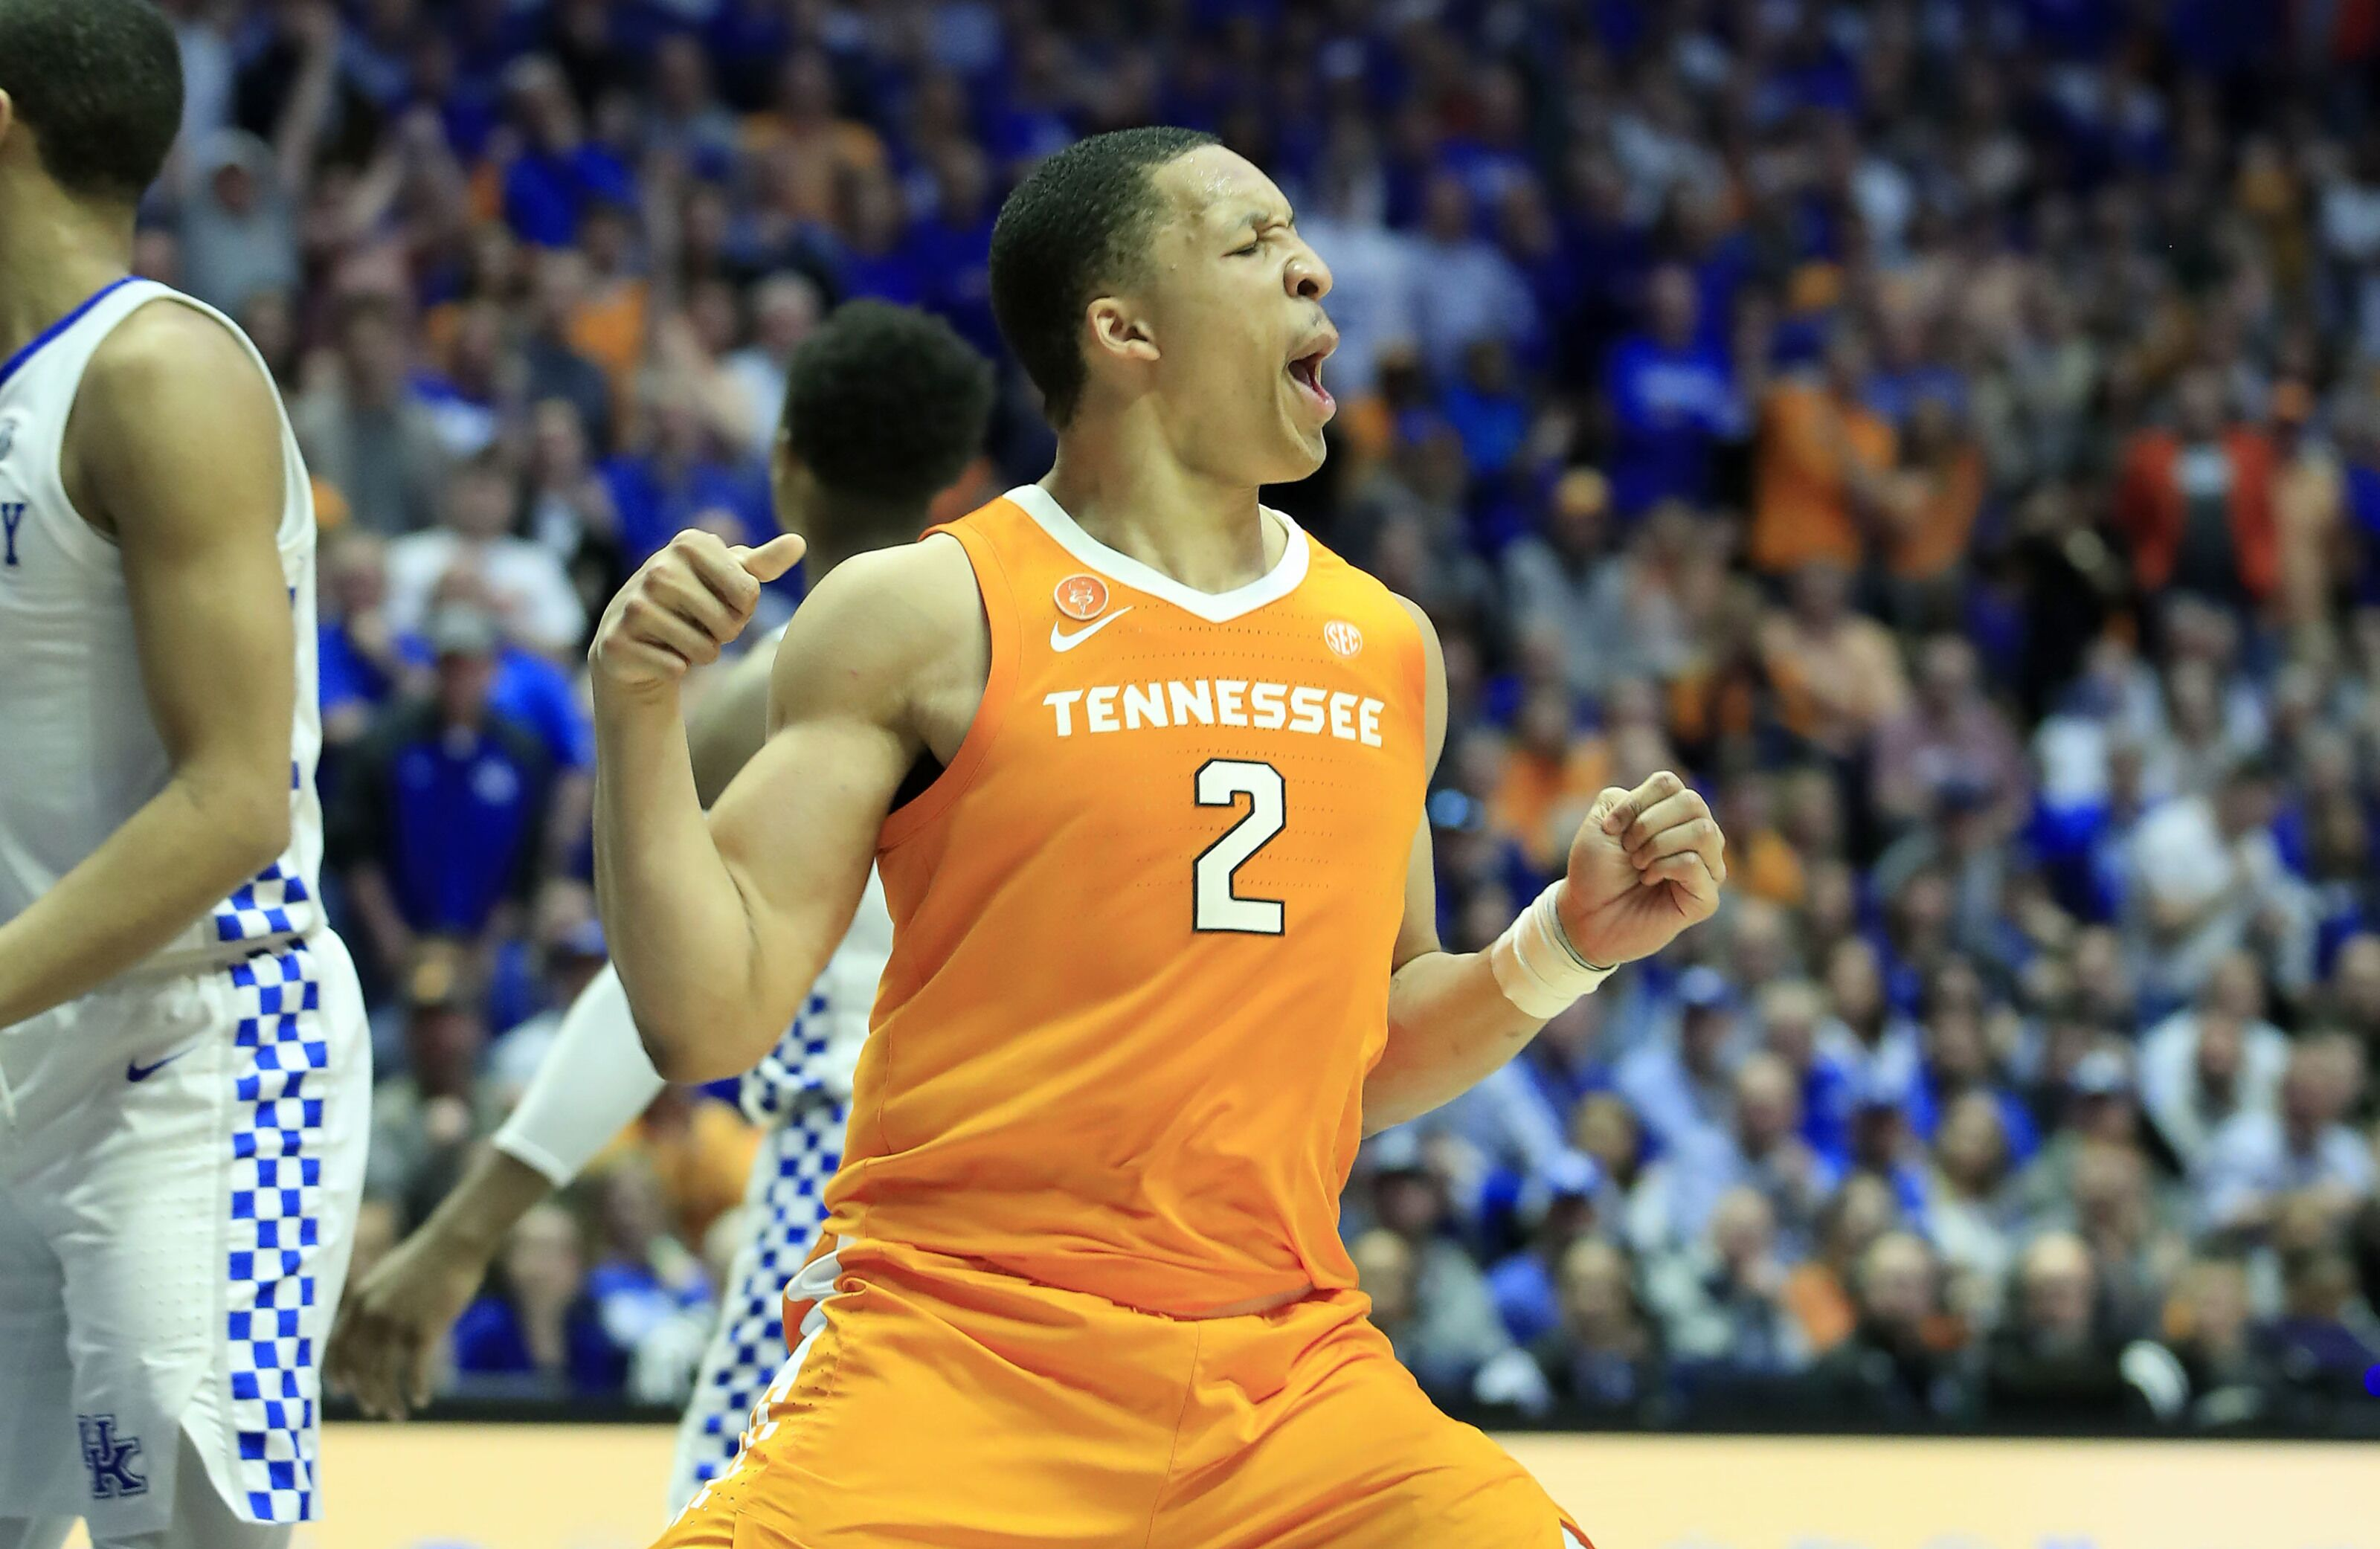 Uk Basketball: Tennessee Basketball: Vols Head To The Championship With